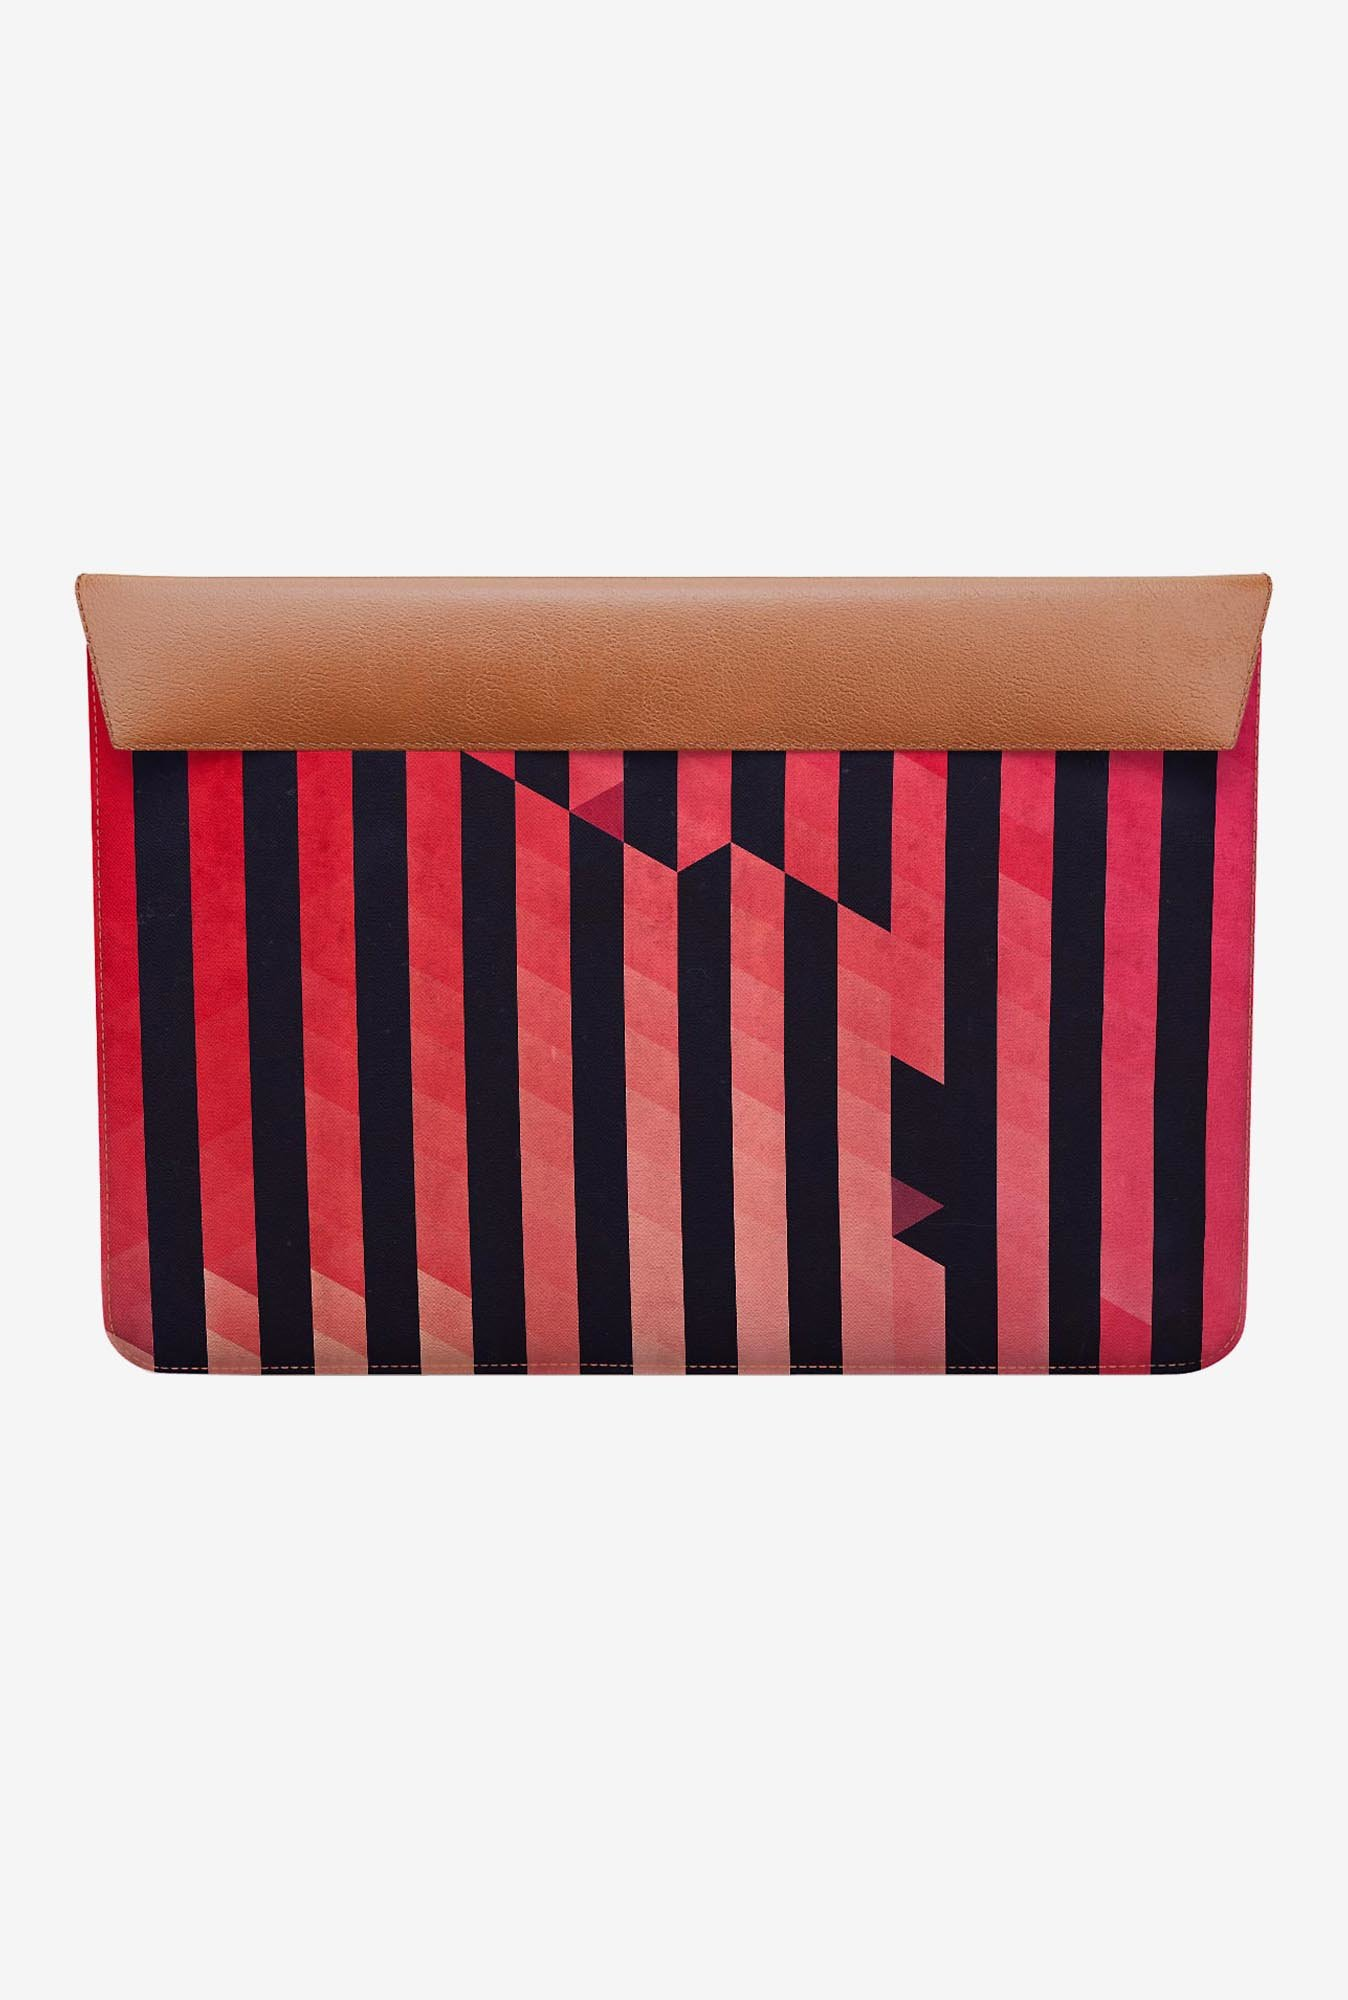 "DailyObjects Slyg Stryyp Macbook Air 11"" Envelope Sleeve"